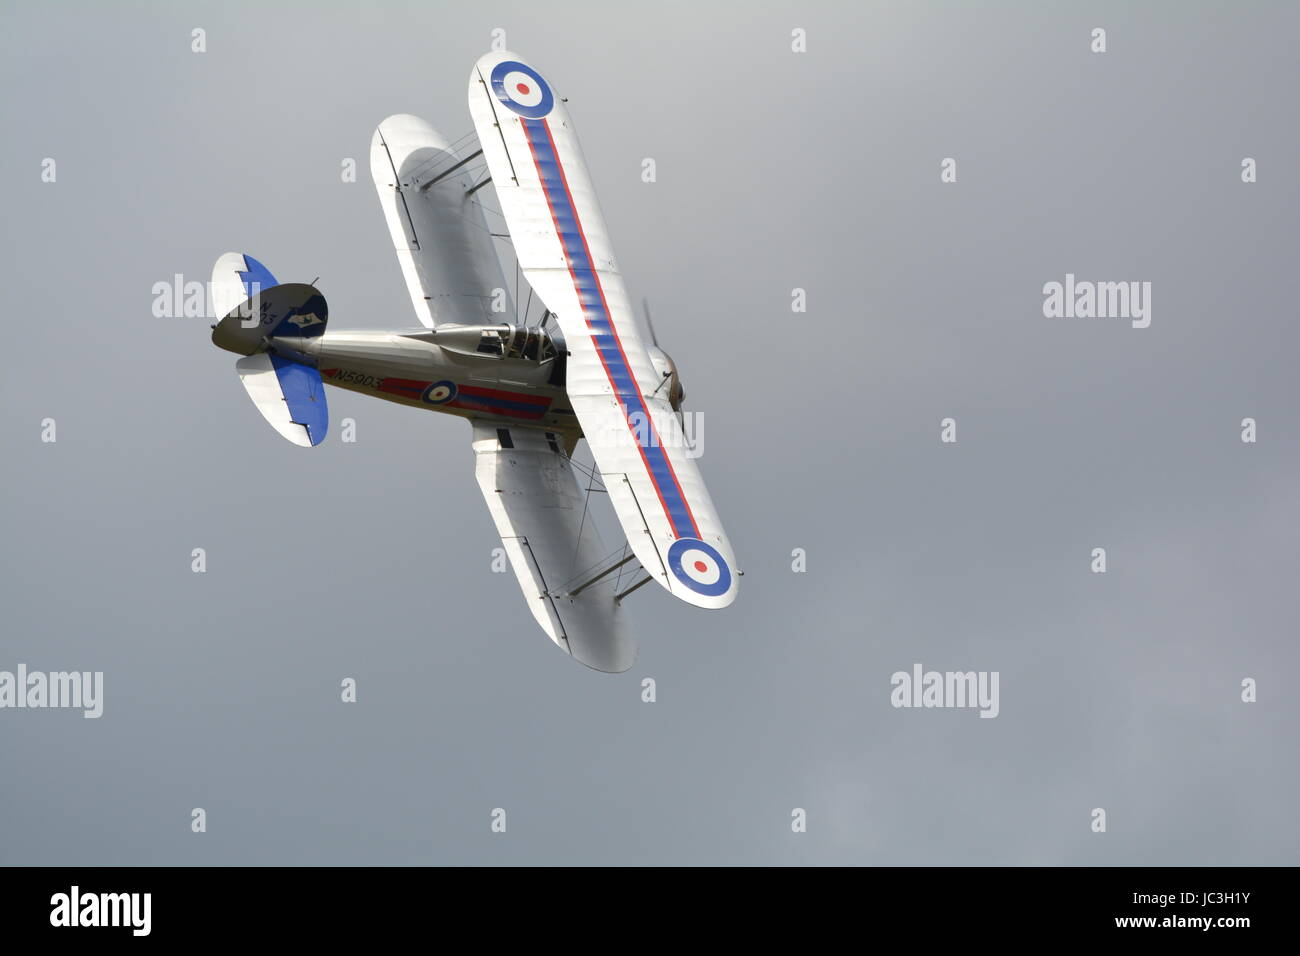 Booster gladiator bi plane fighter - Stock Image